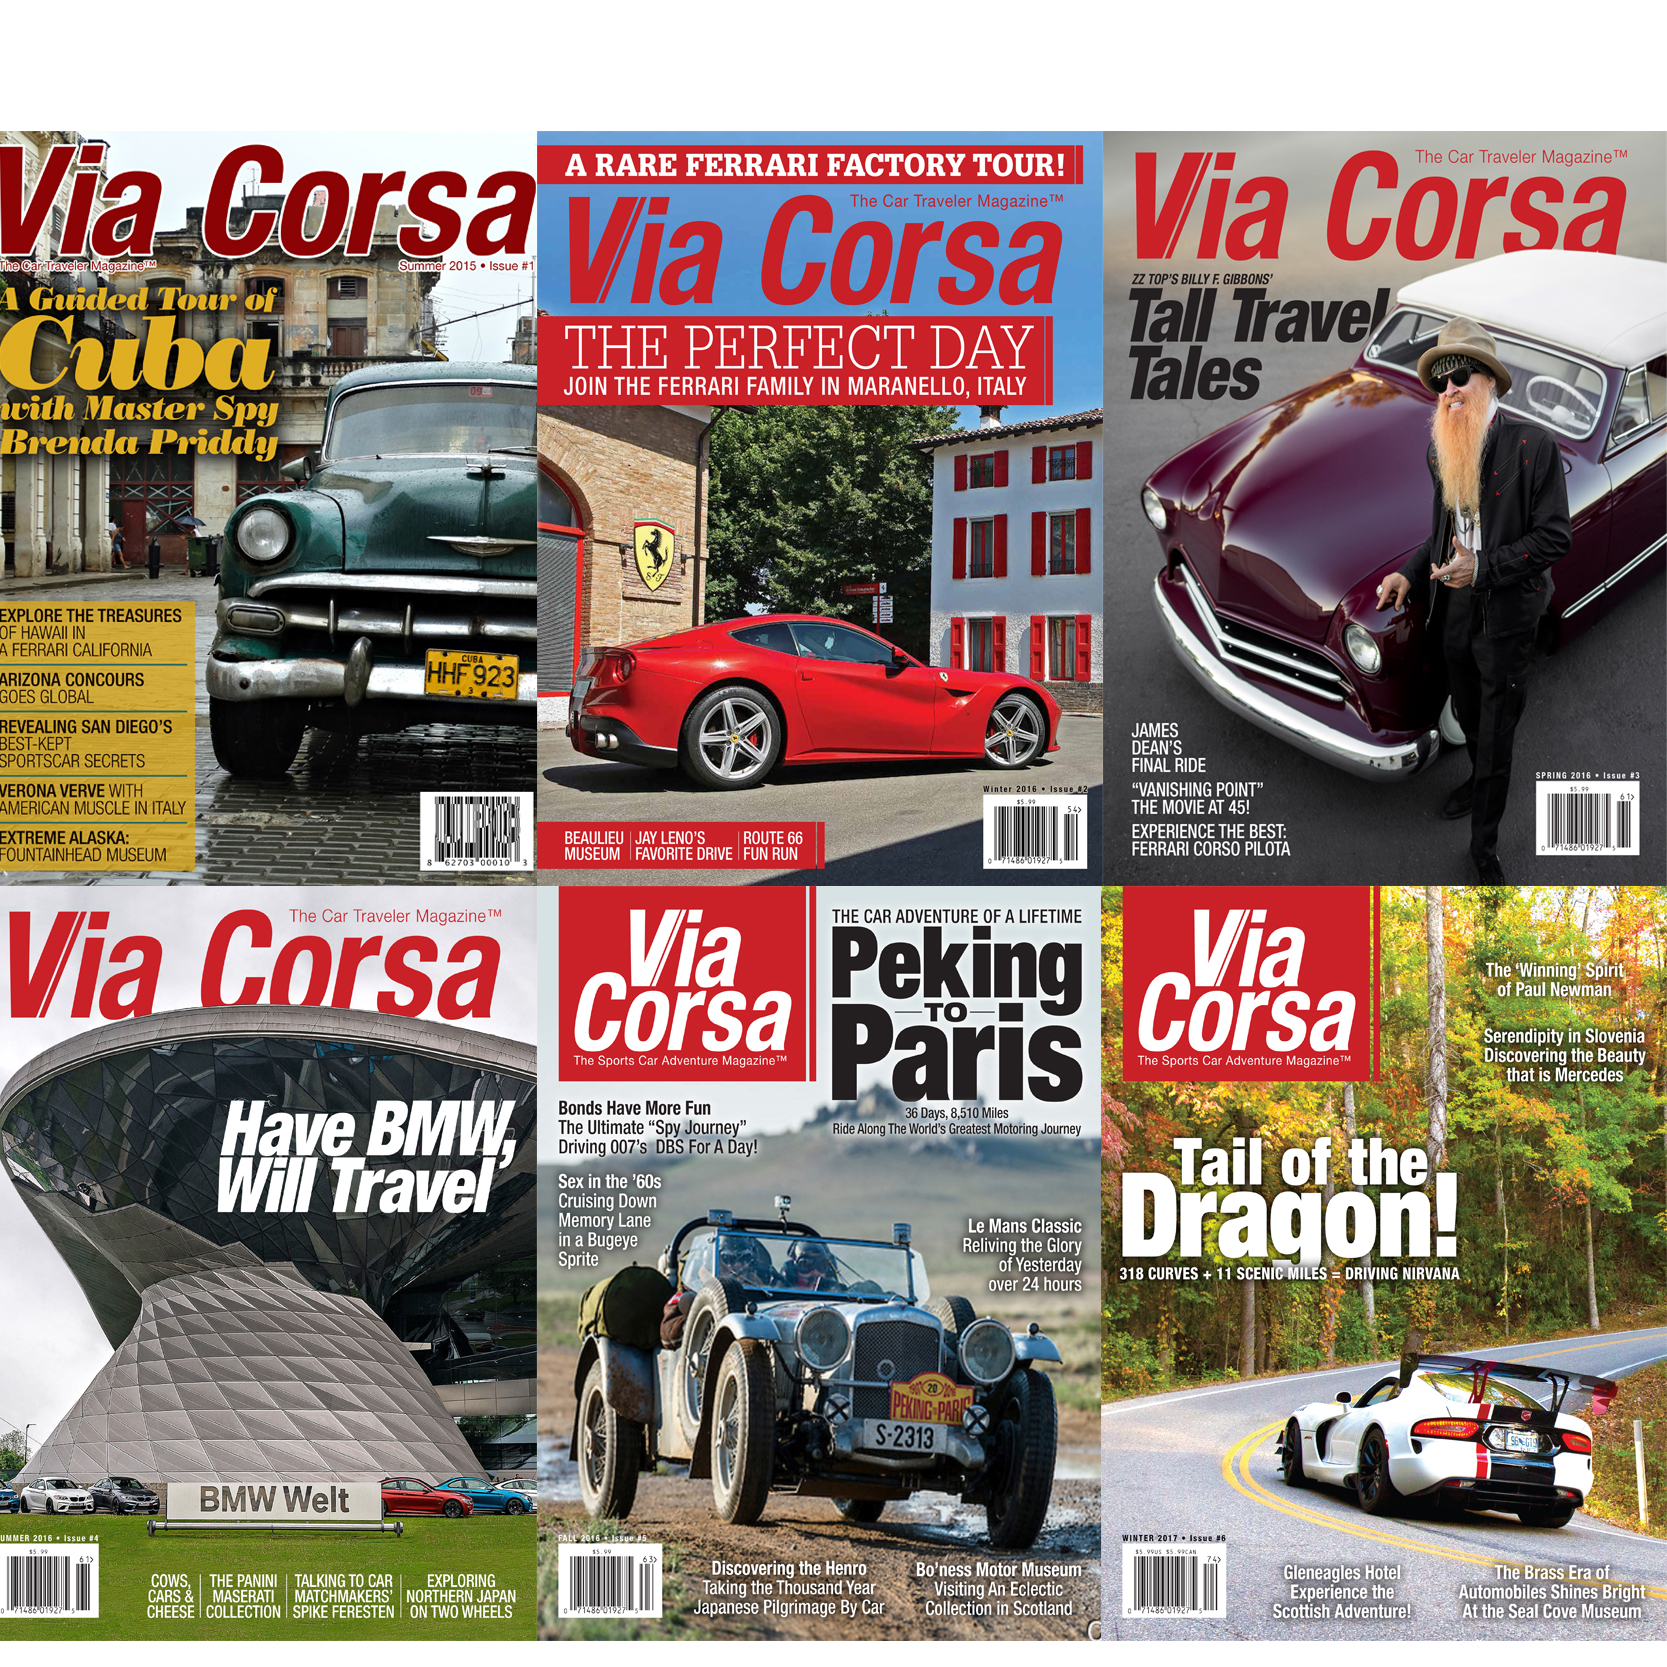 Via Corsa Magazine 2-Year Subscription - U.S. Only - Via Corsa